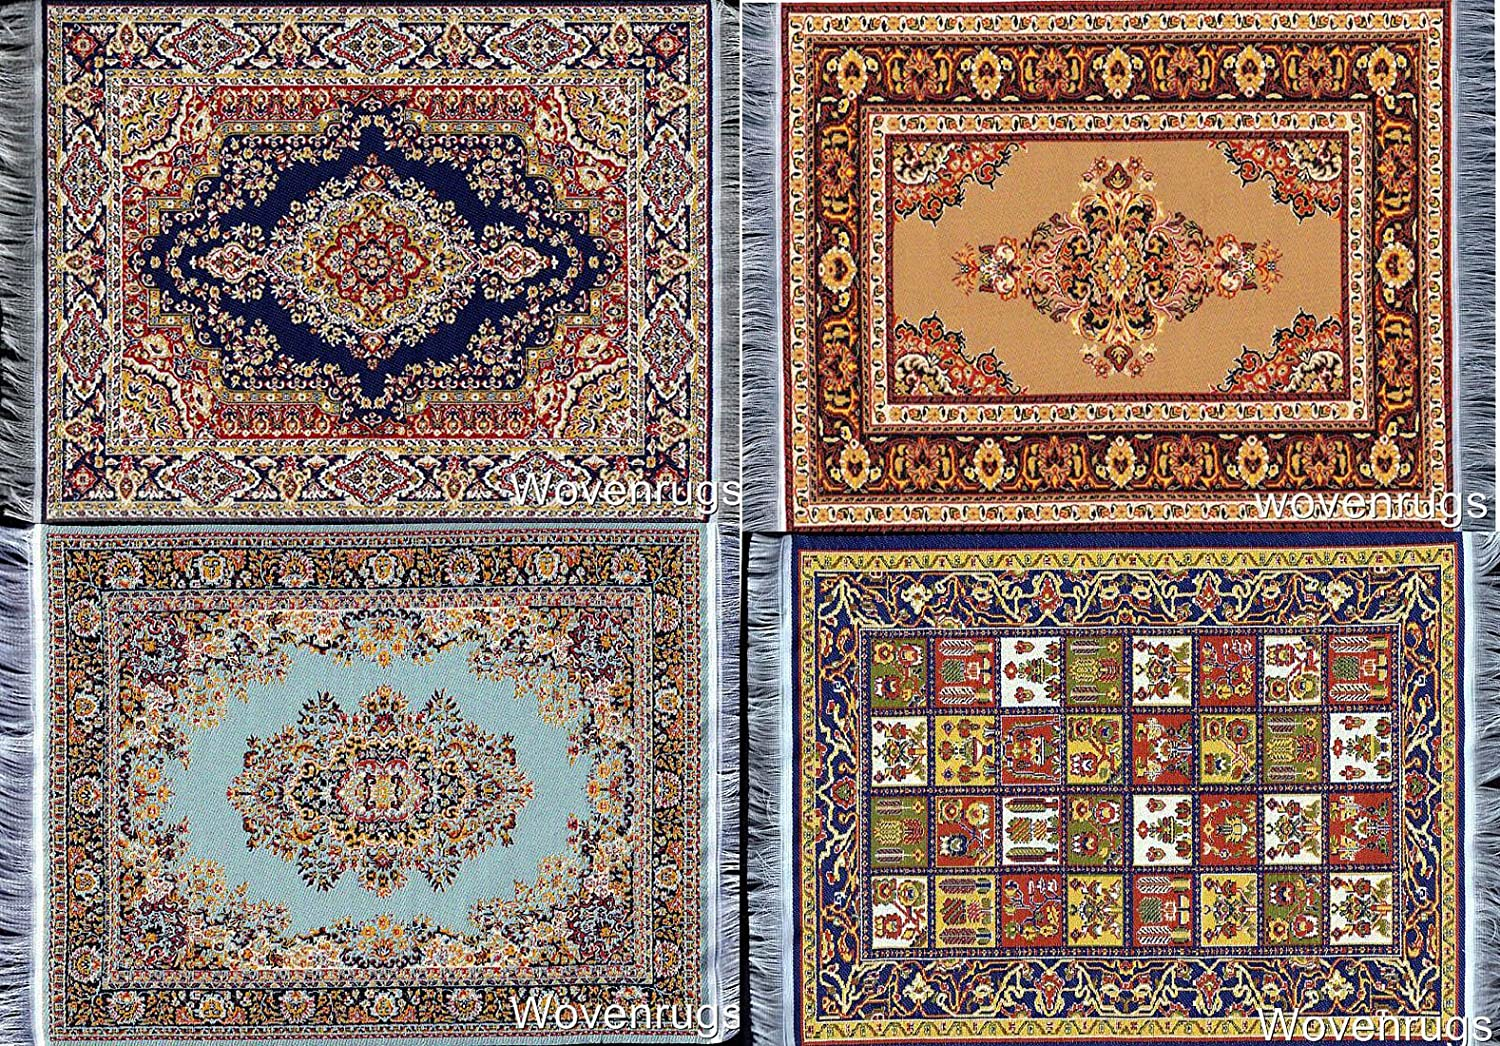 Inusitus Set of 4 Dolls House Rugs for Dollhouse Furniture - Miniature Woven Dollhouse Carpet (Mixed Colors)